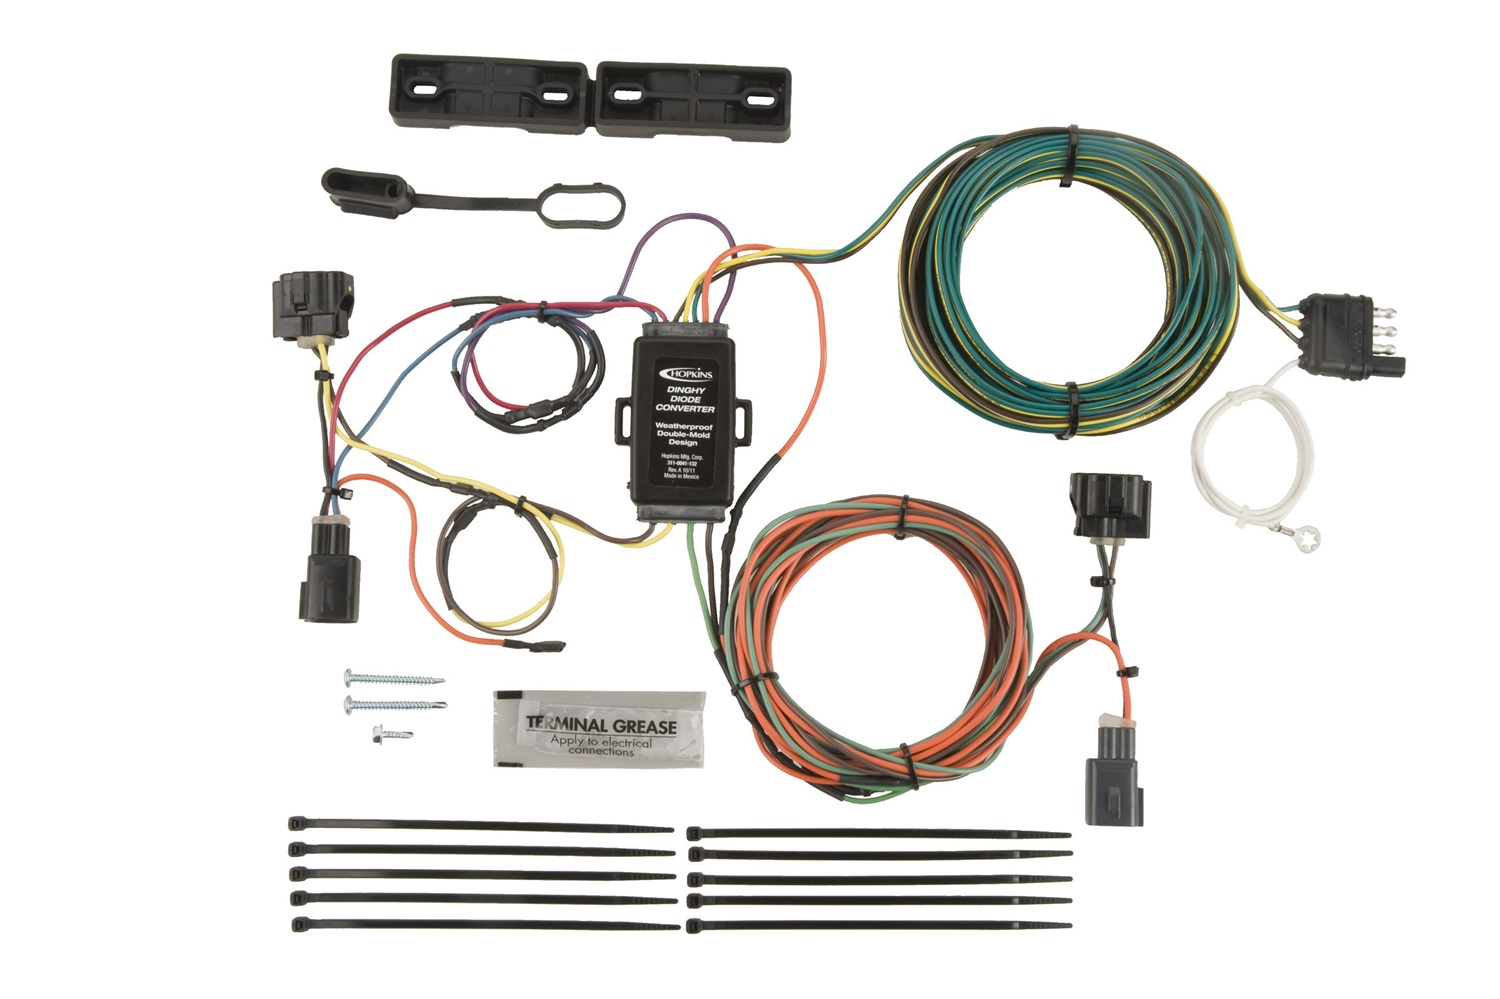 hight resolution of details about hopkins towing solution 56202 plug in simple vehicle to trailer wiring harness